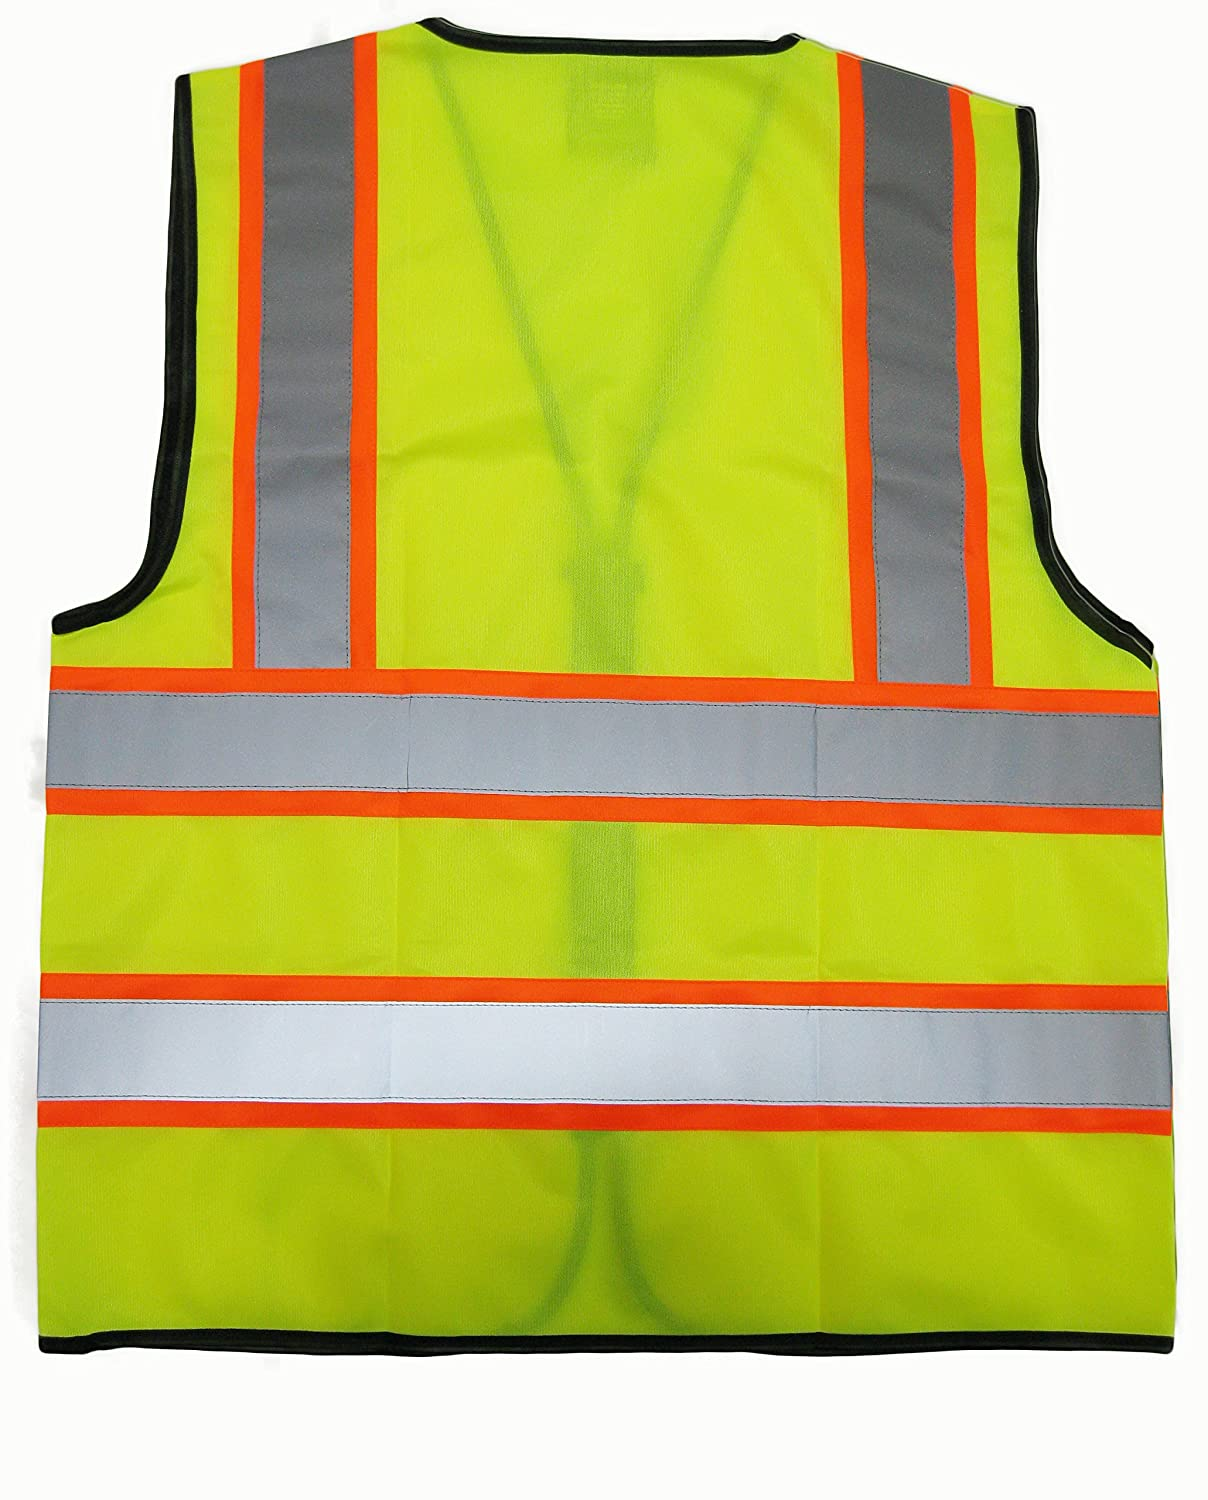 GripGlo Reflective Safety Vest Bright Neon Color With 2 Inch Strips